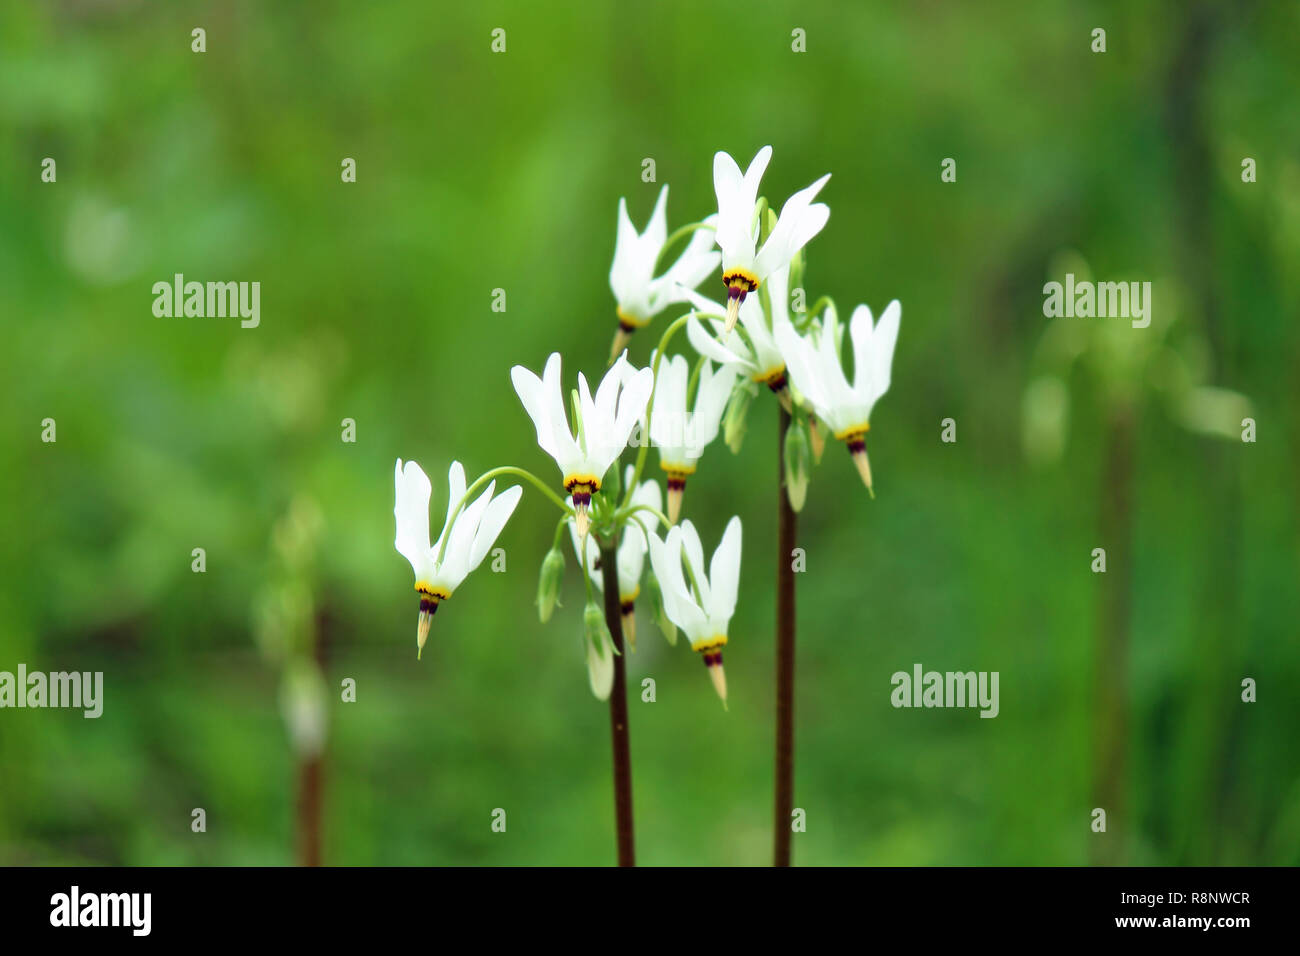 Dodecatheon blooming in the forest. - Stock Image